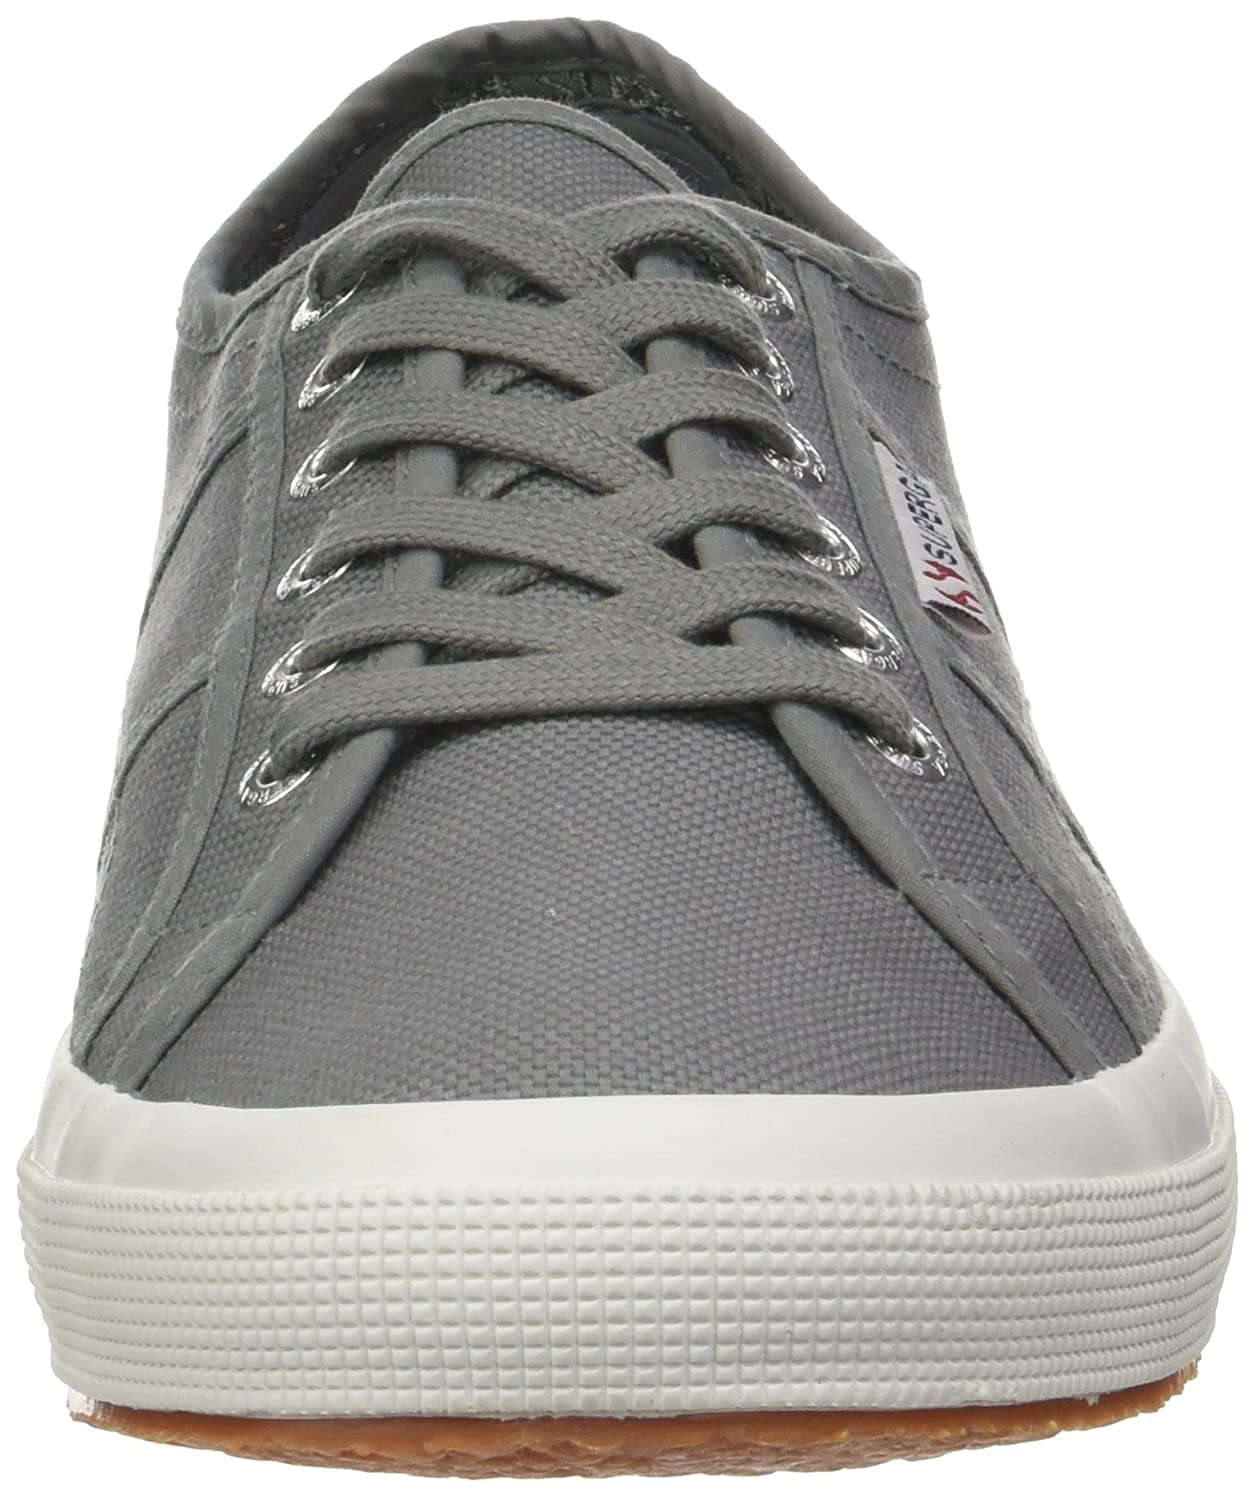 Superga B002WGIY1W Women's 2750 Cotu Sneaker B002WGIY1W Superga UK9 EU43 US10|Grey Dk Sage 18a2c6